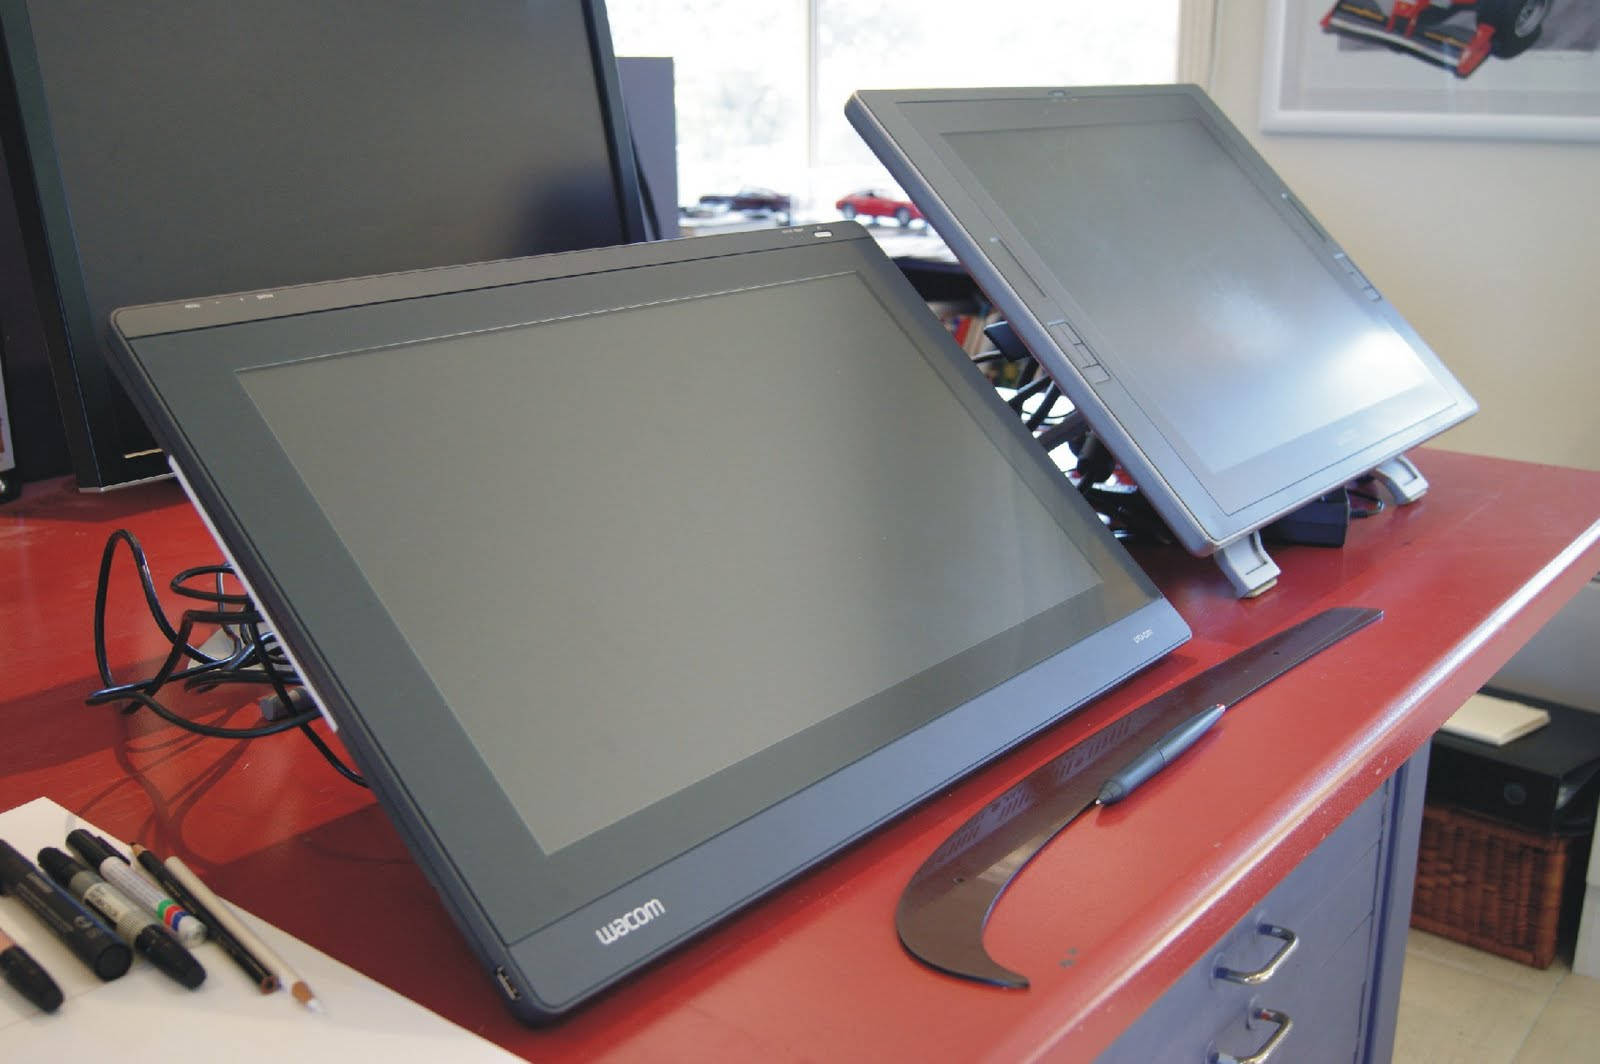 drawon: Wacom DTU-2231 evaluation